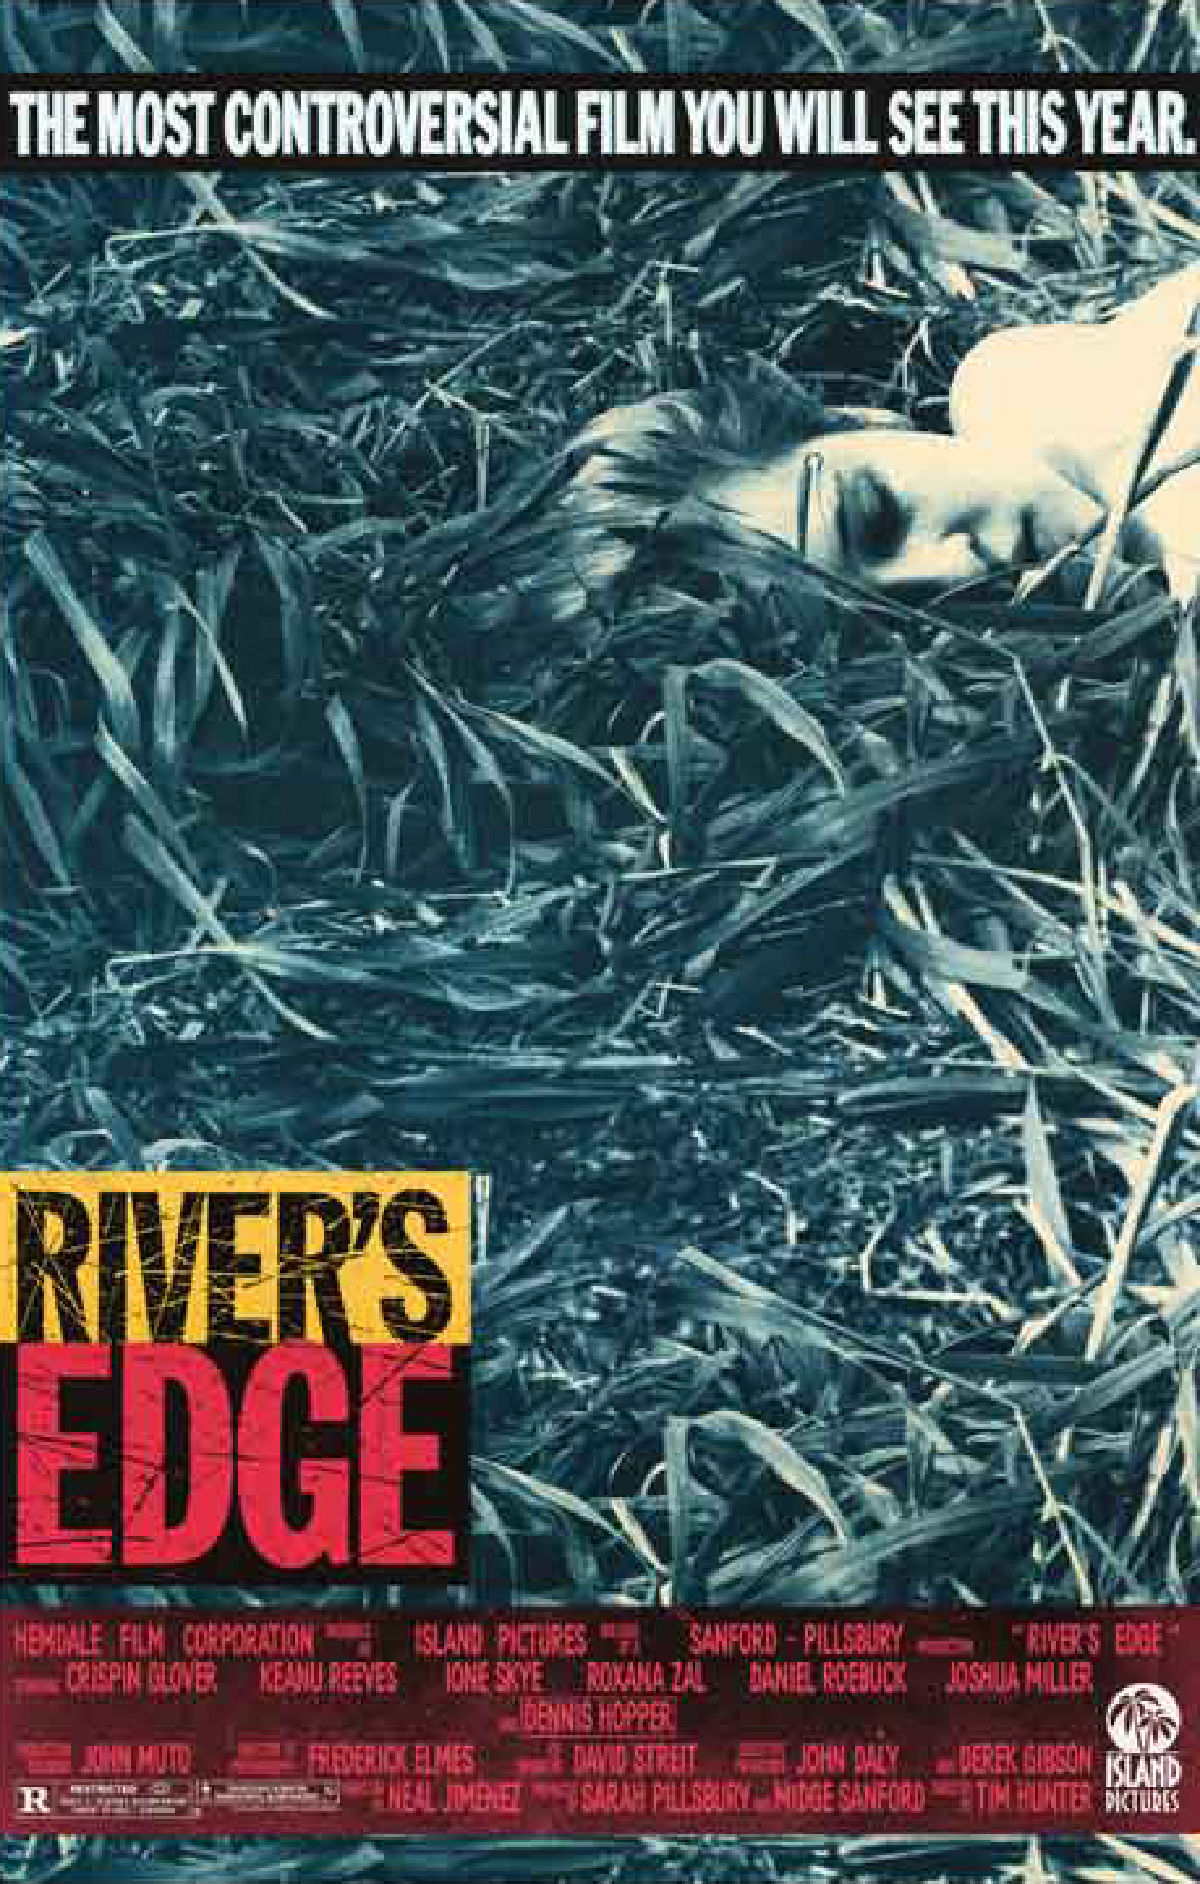 'River's Edge' movie poster